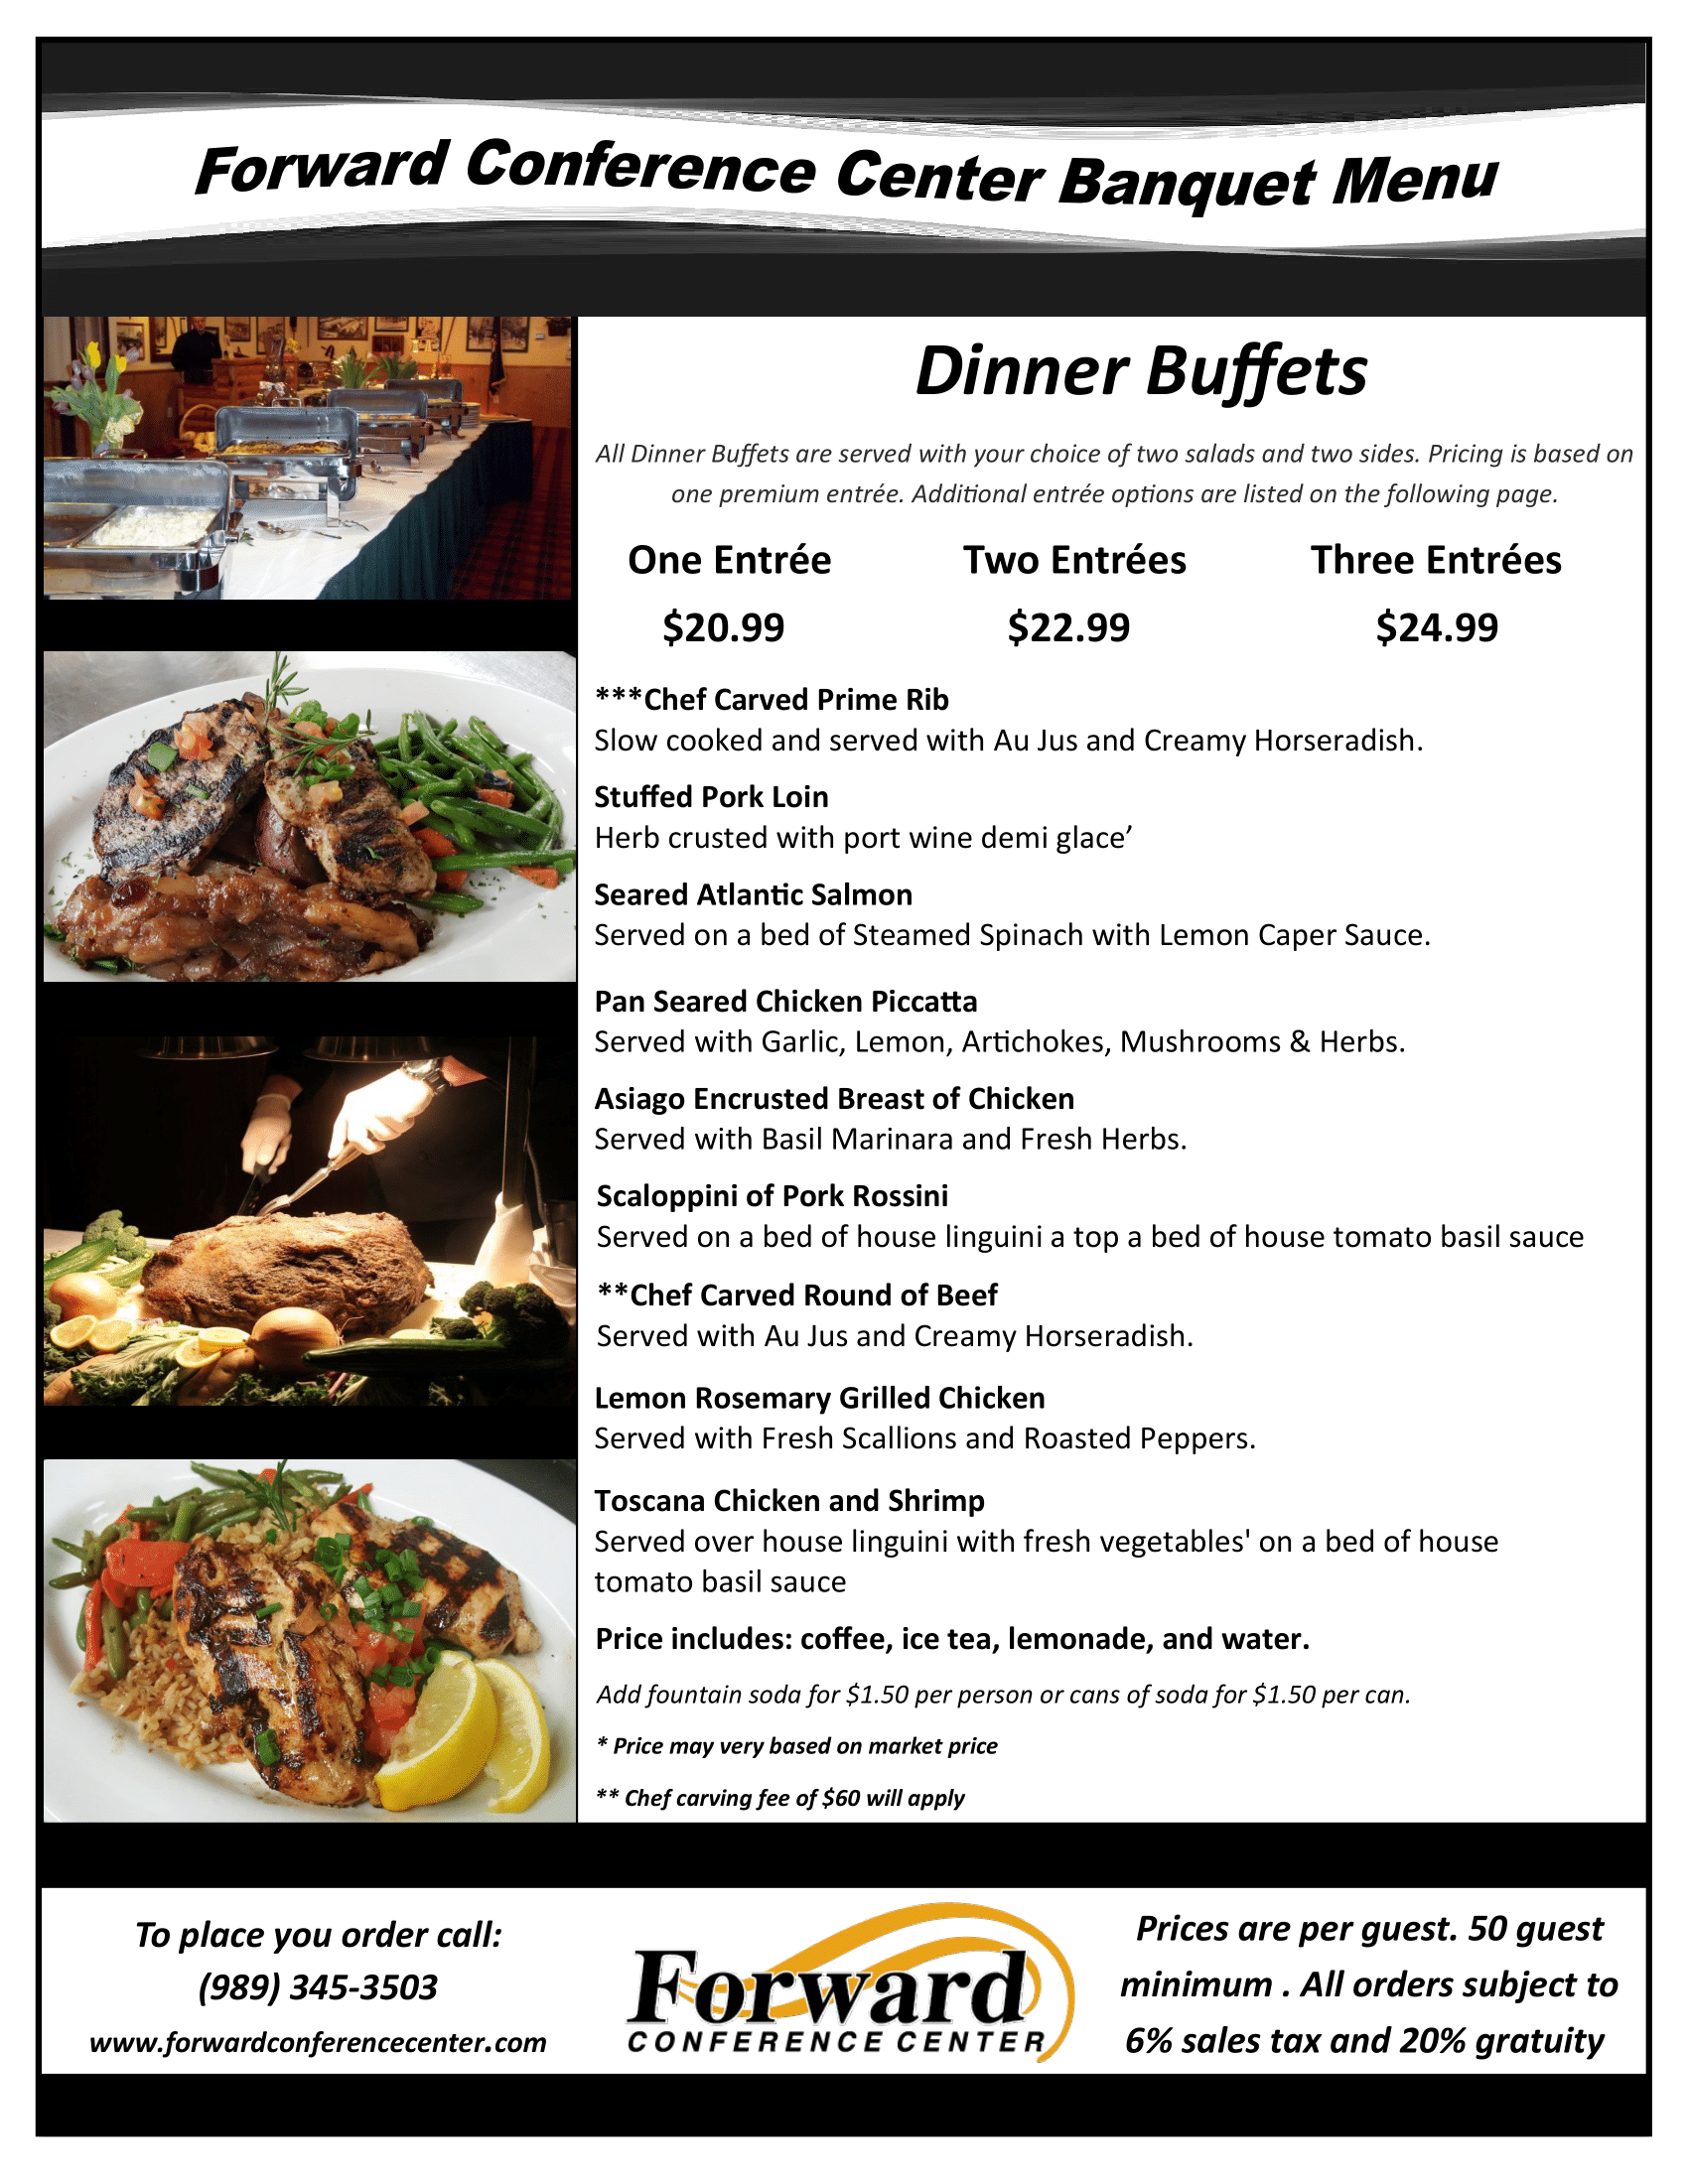 Full Banquet Menu - #8